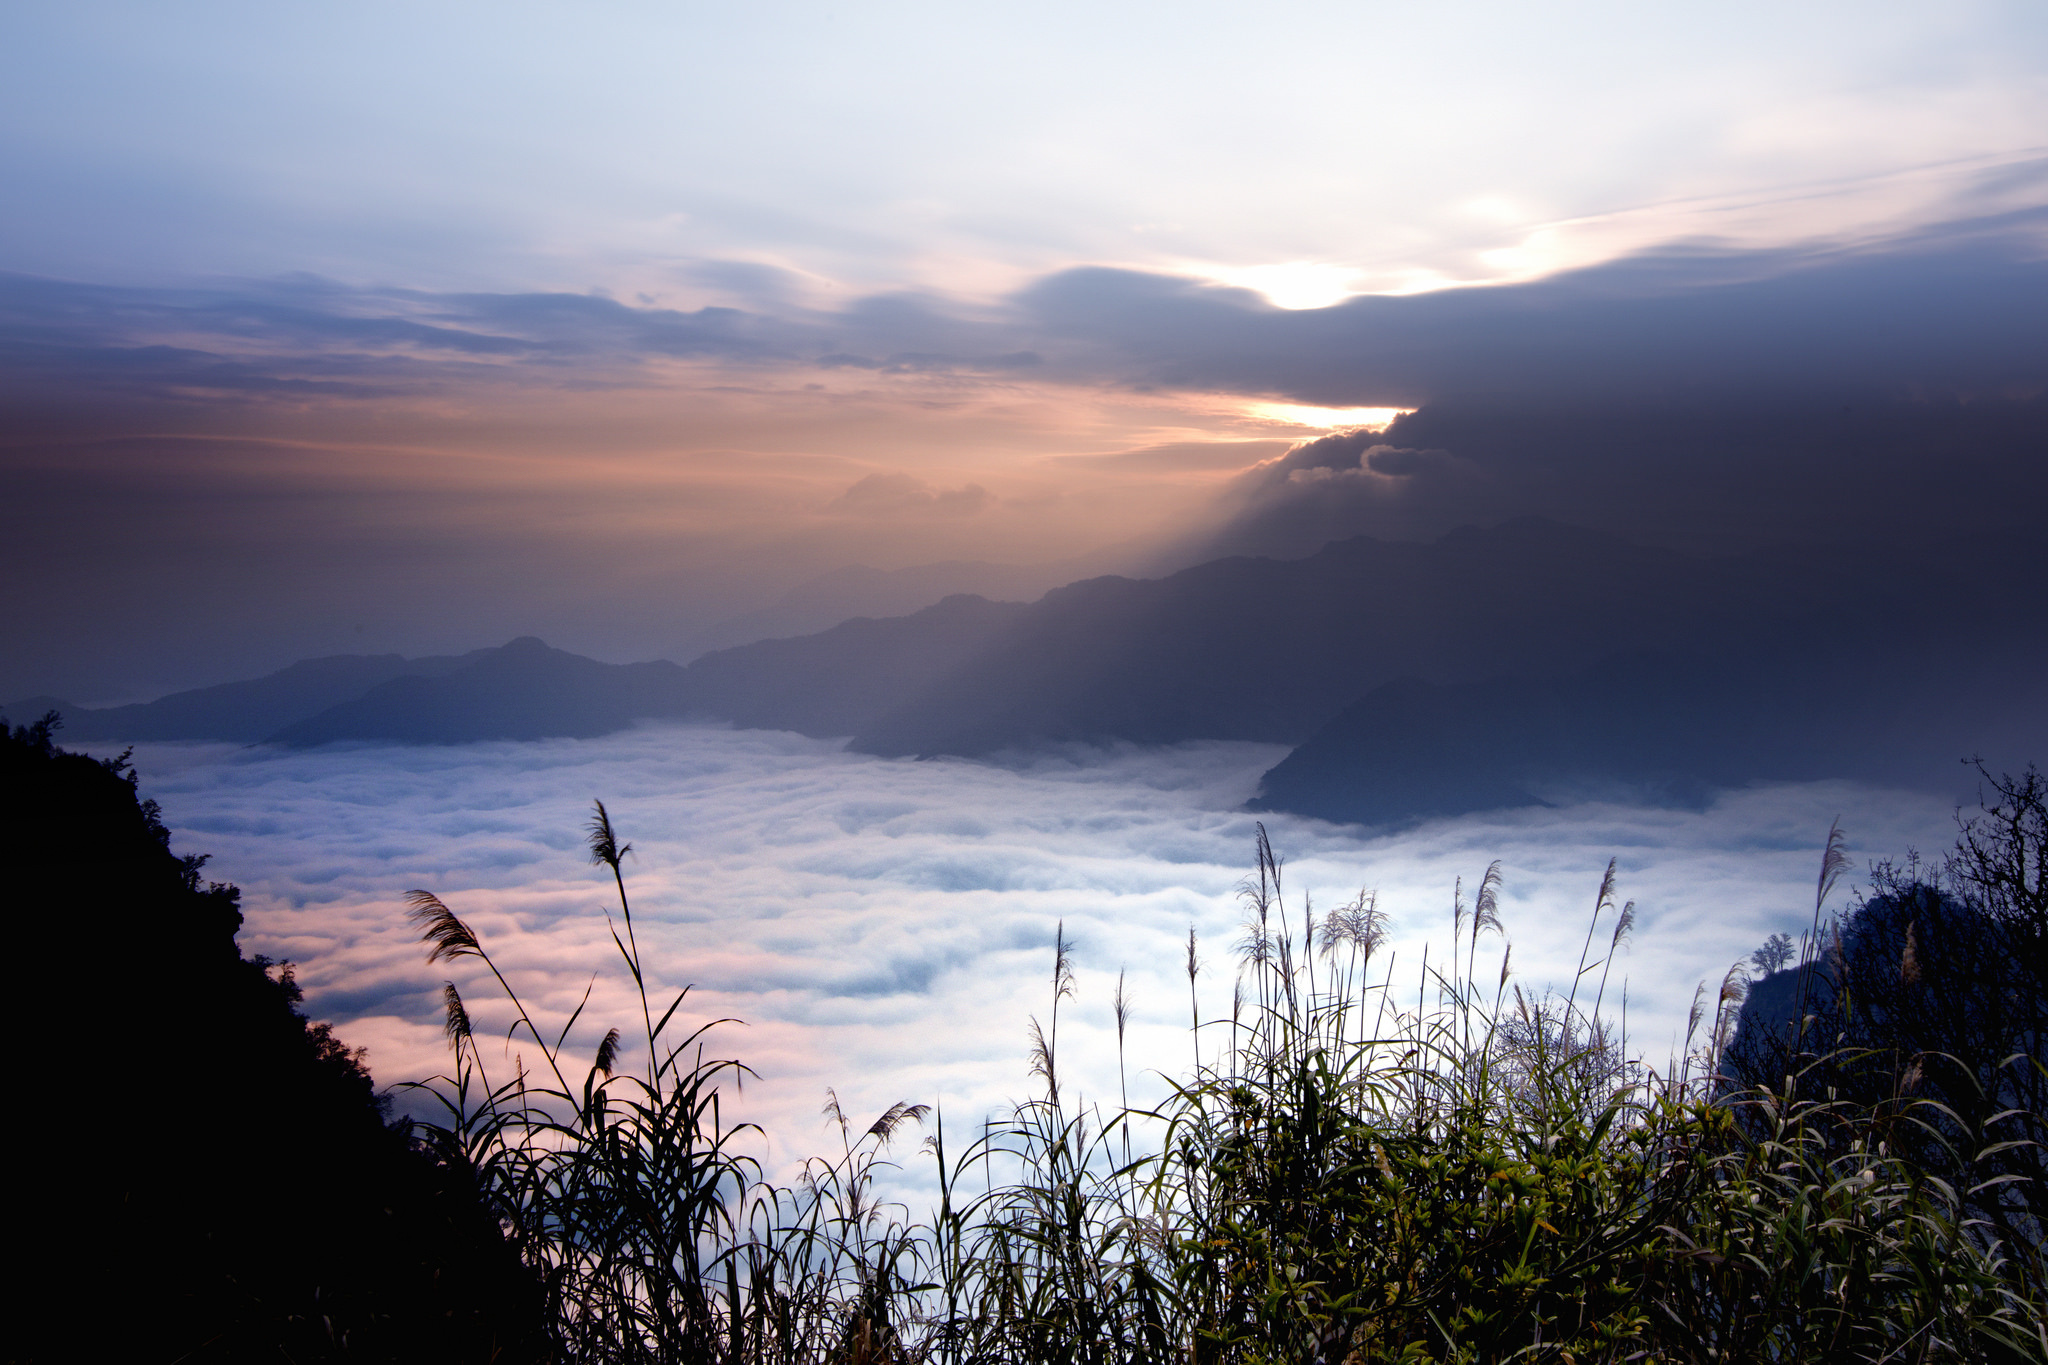 Taiwan Sky Mountains Clouds Grass Fog